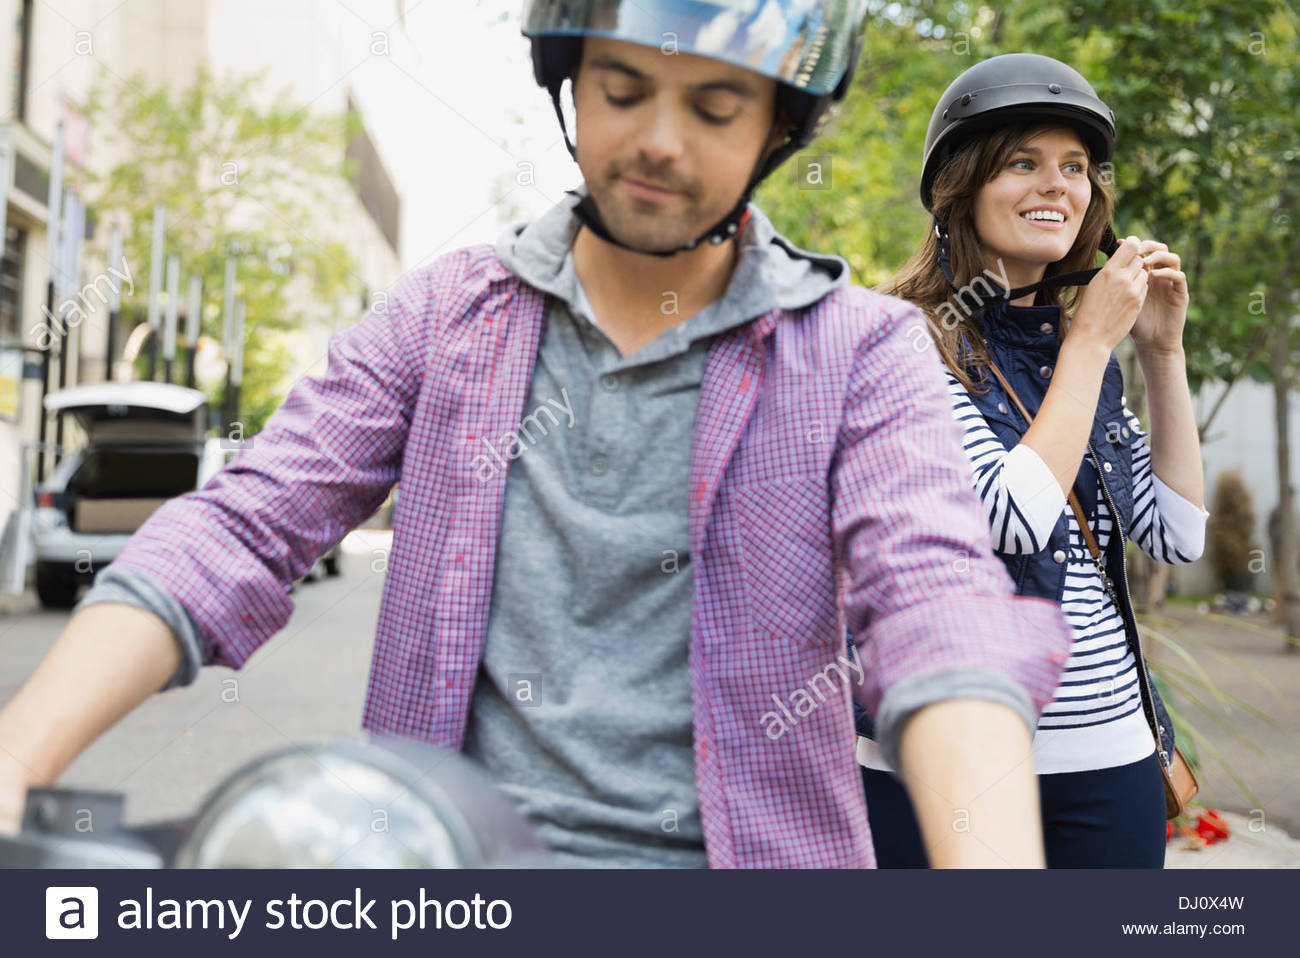 Couple getting onto scooter with helmets - Stock Image